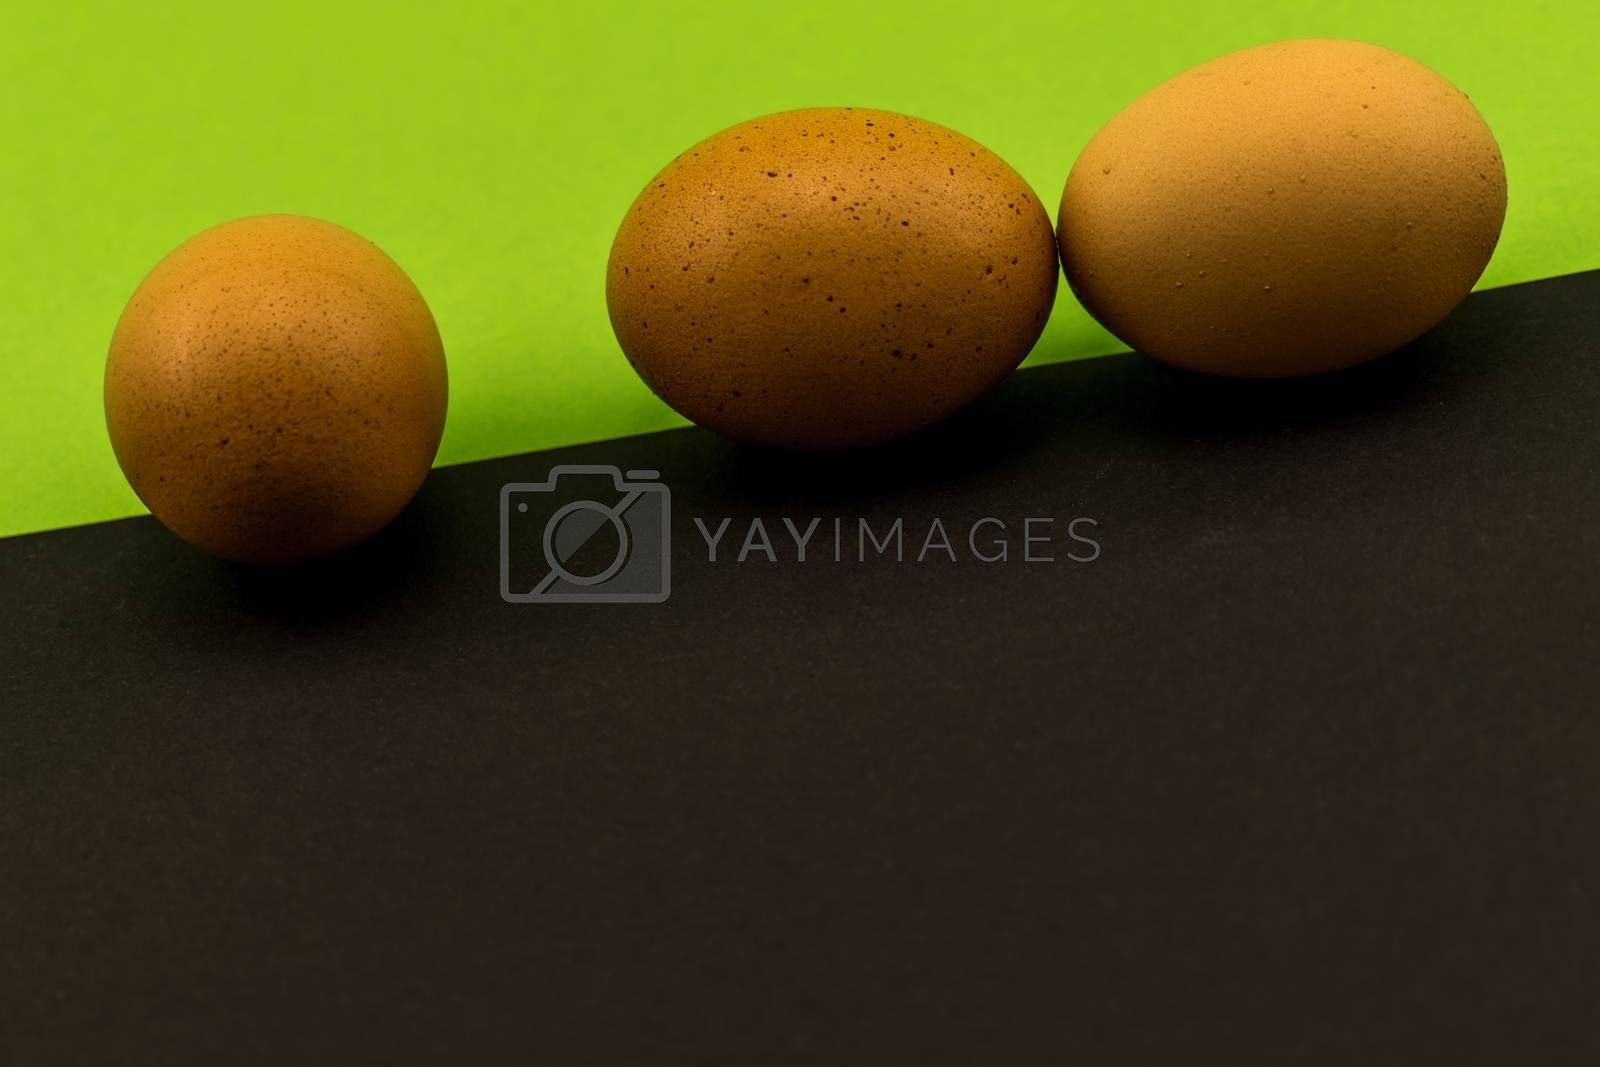 Abstract picture at Easter, three eggs on the oblique borderline of a front black and rear green background, concept